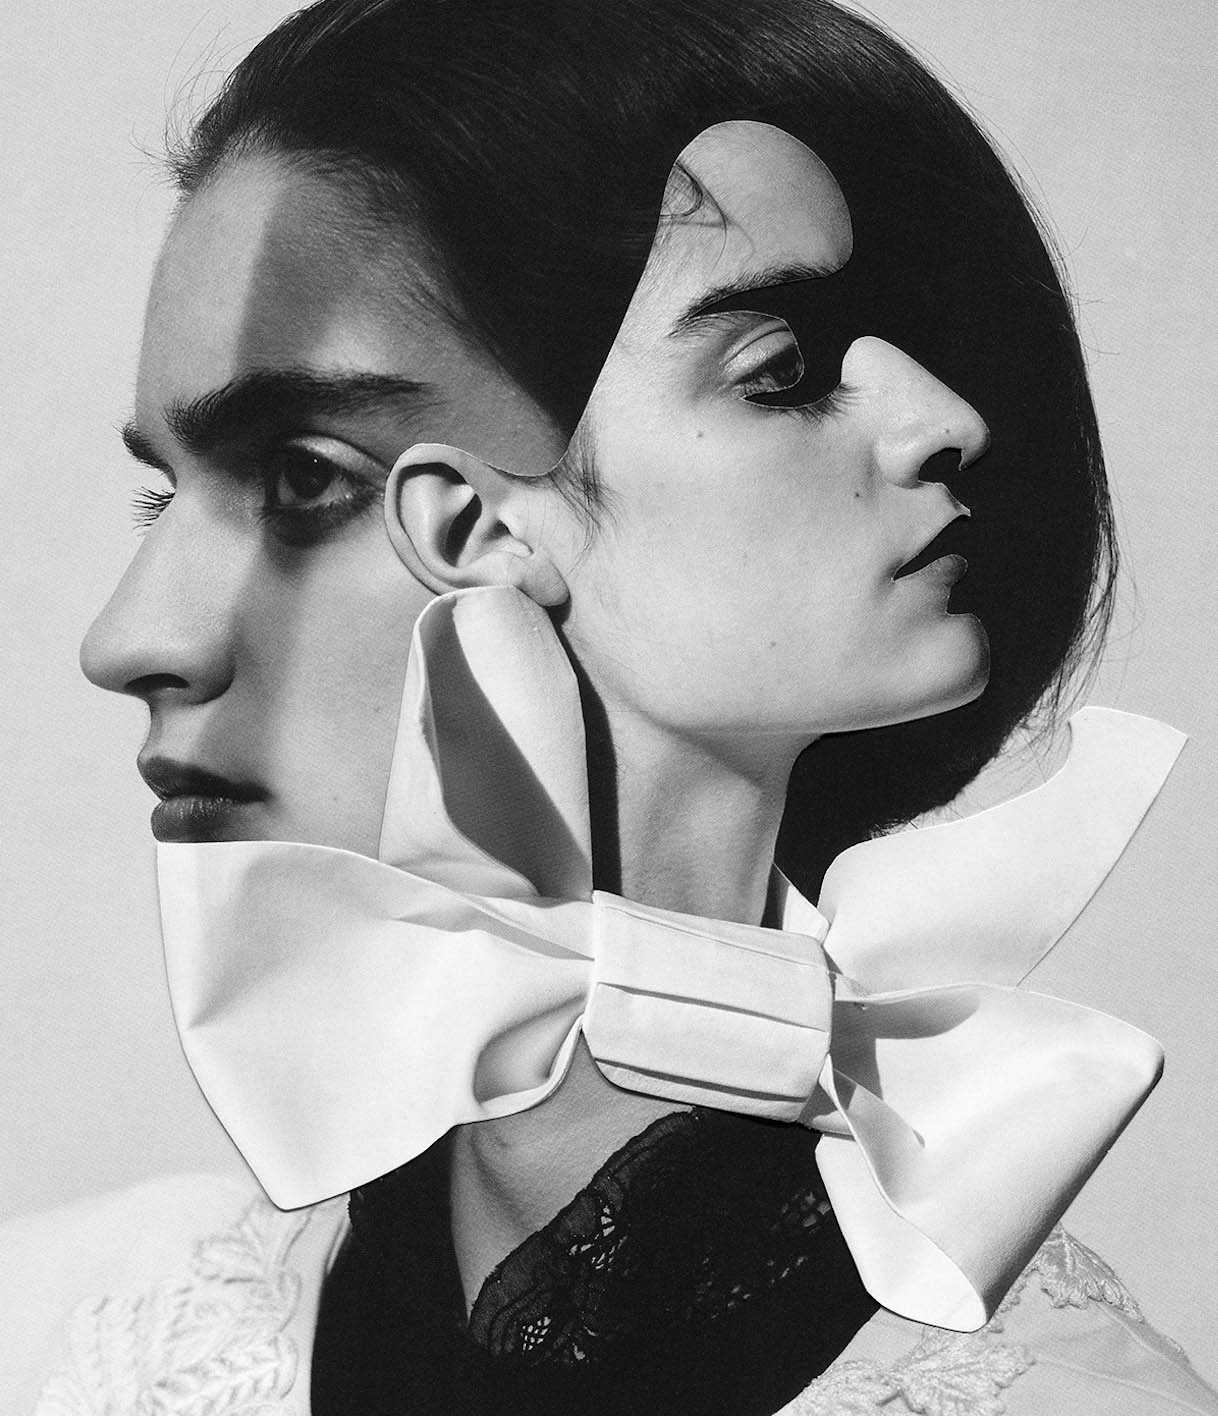 Fashion_Pablo_Thecuadro_Collages7